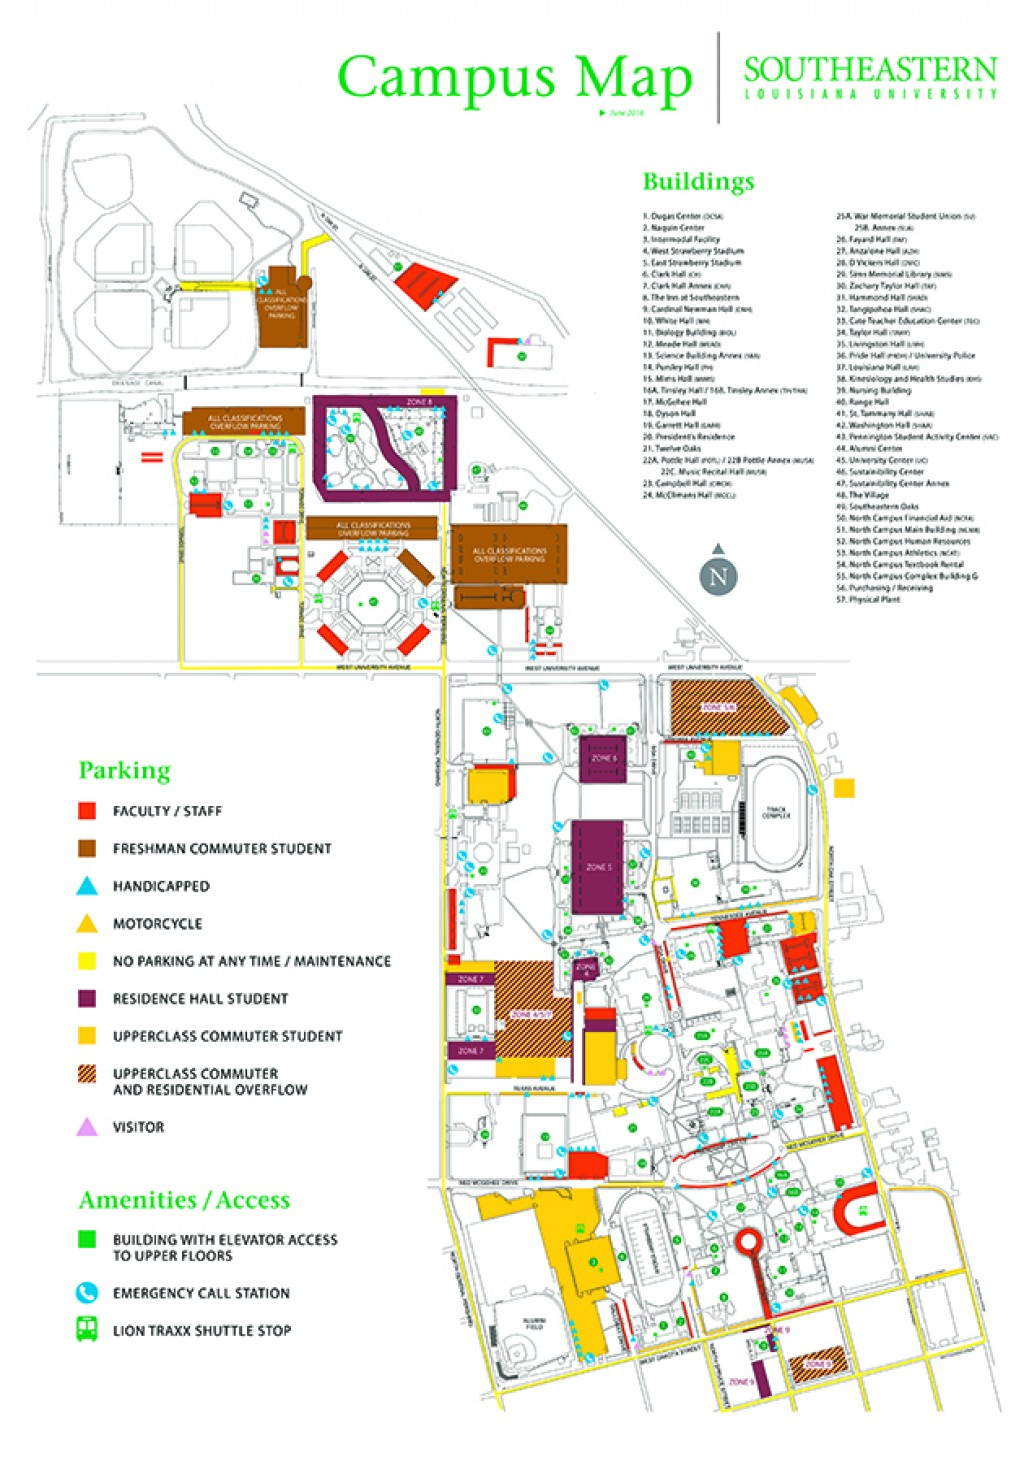 southeastern louisiana university campus map Know The Parking Policy And Procedure The Lion S Roar southeastern louisiana university campus map